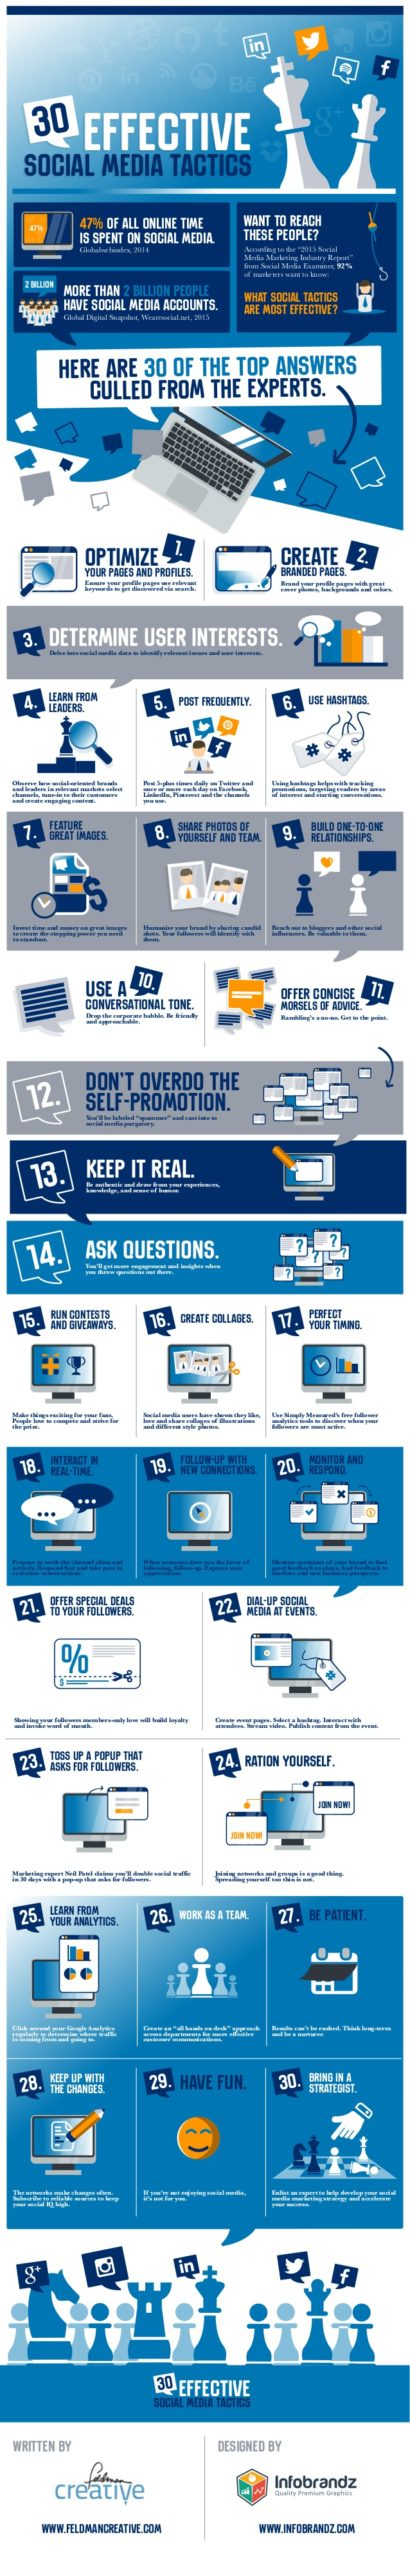 30 Effective Social Media Tactics Infographic Image